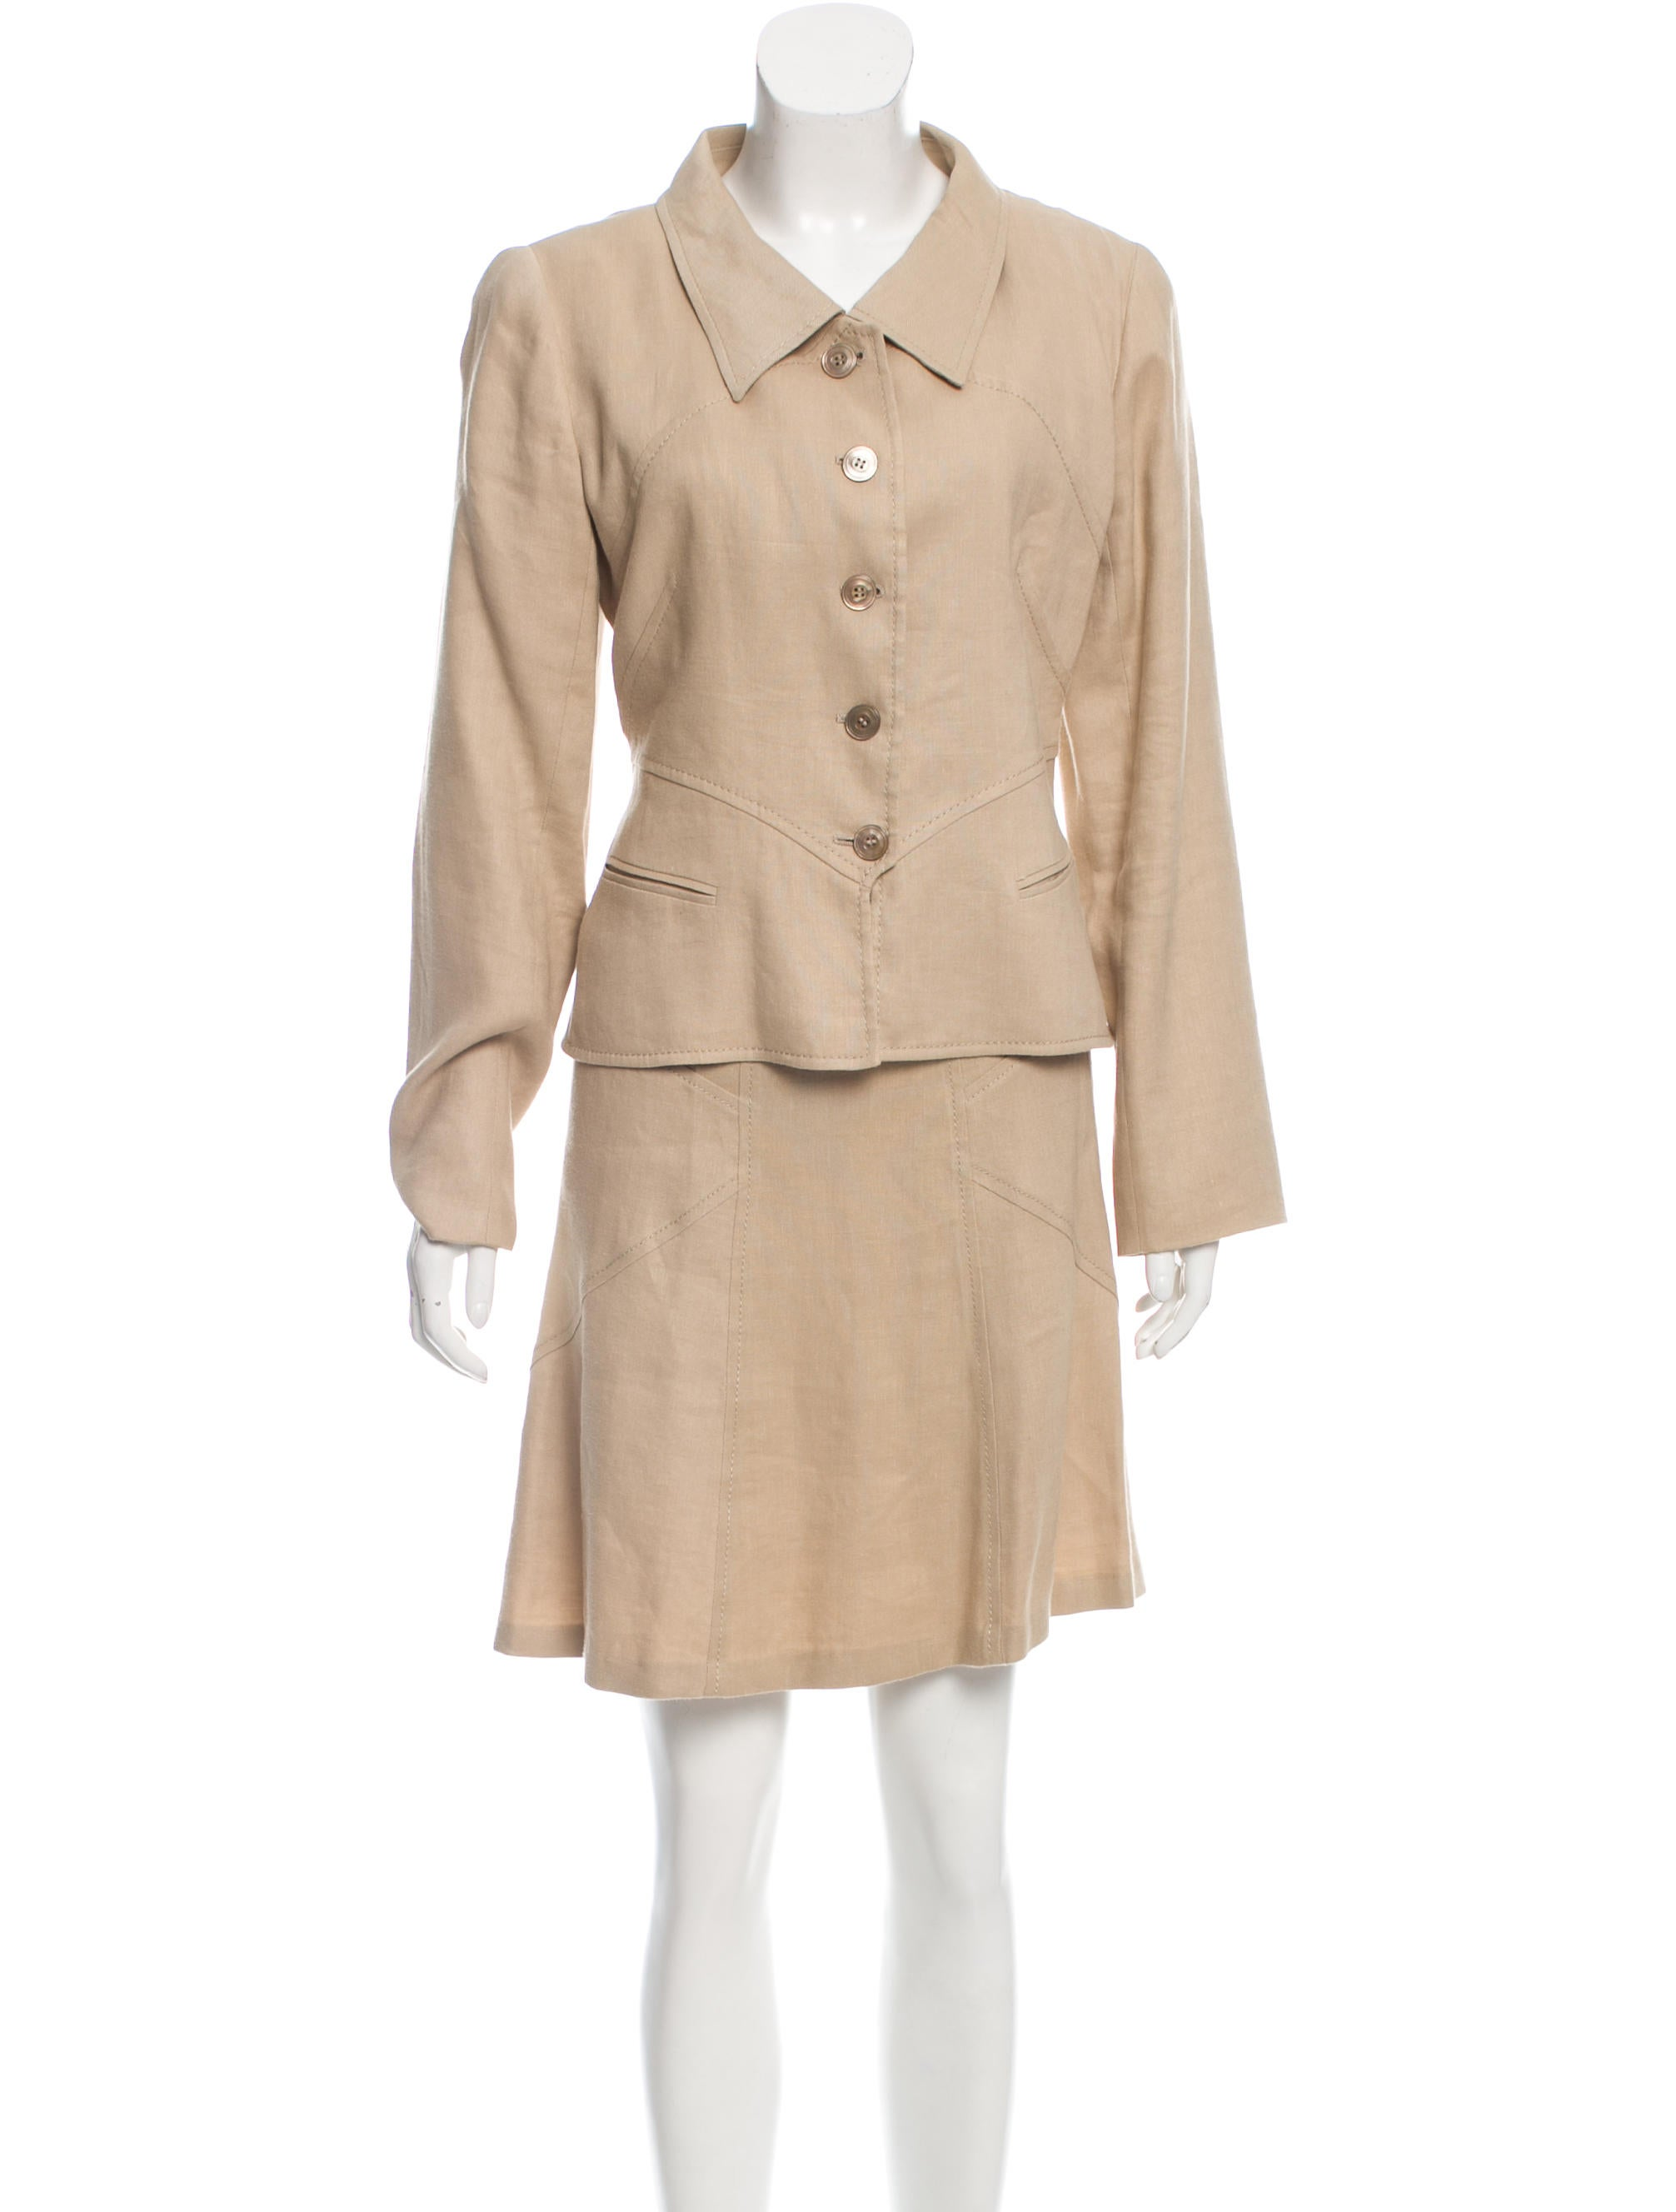 Find great deals on eBay for linen skirt suit. Shop with confidence.